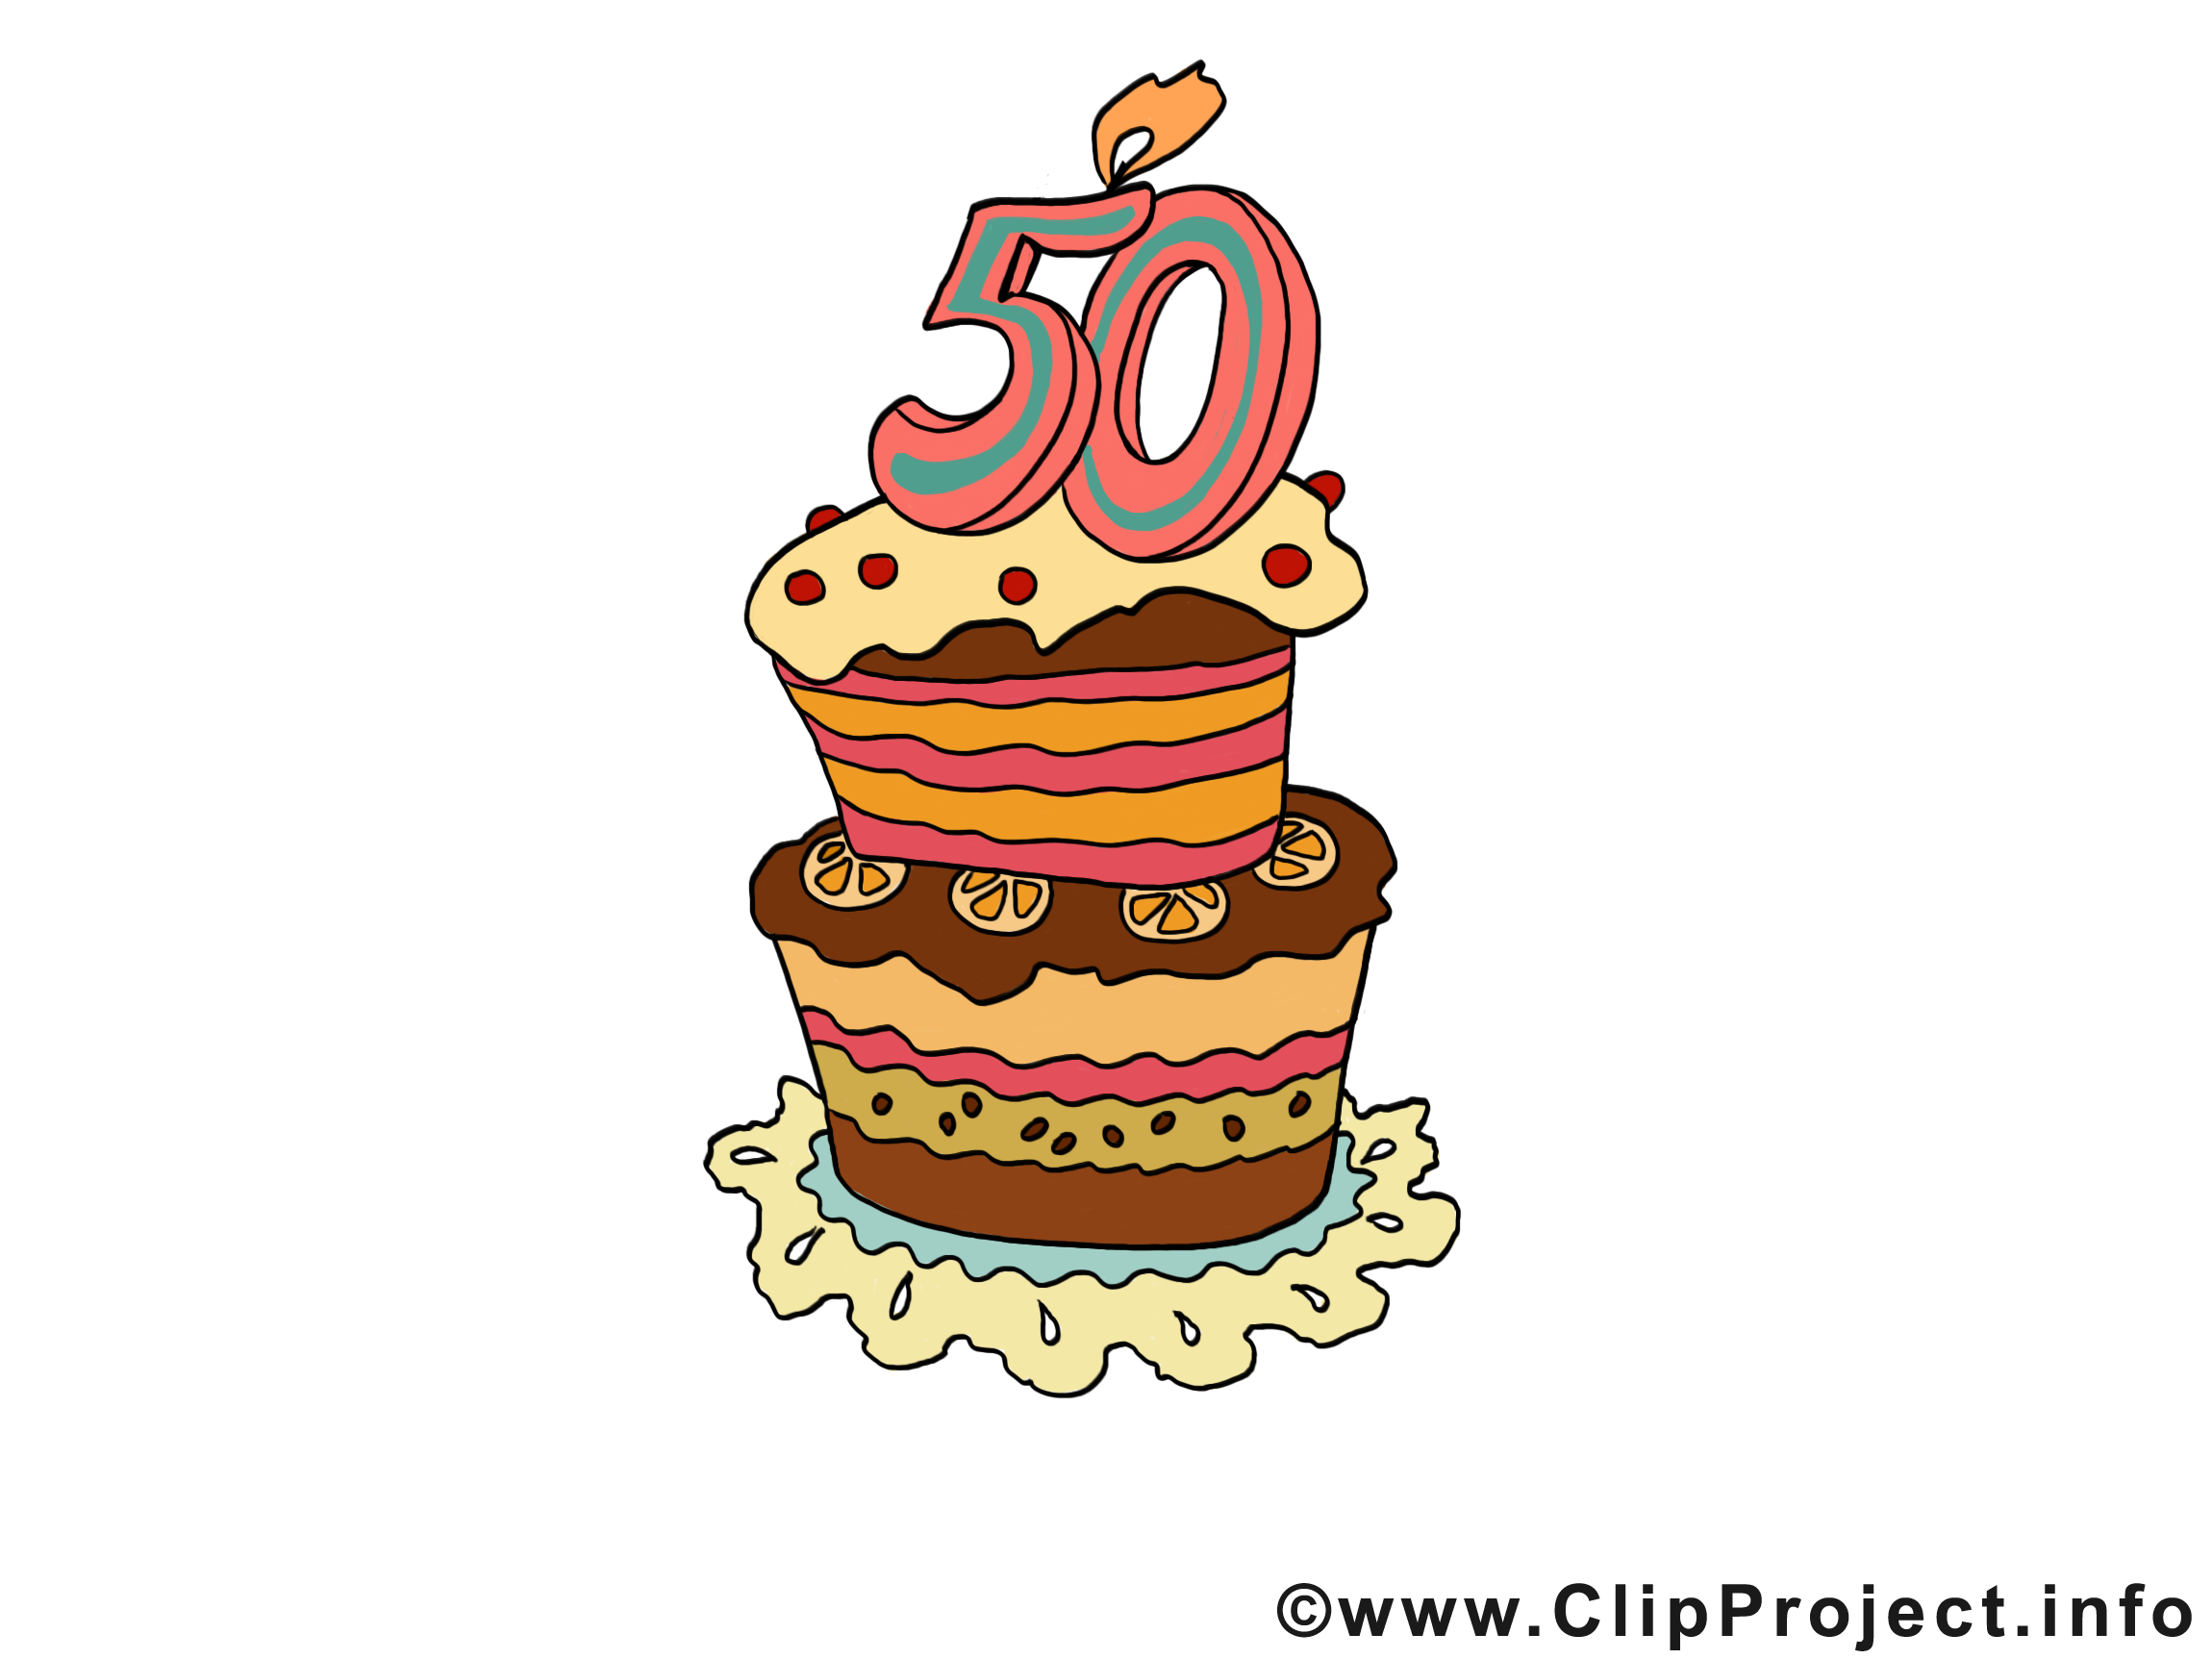 Clipart 50 geburtstag einladung banner black and white library Geburtstag Bilder, Cliparts, Cartoons, Grafiken, Illustrationen ... banner black and white library